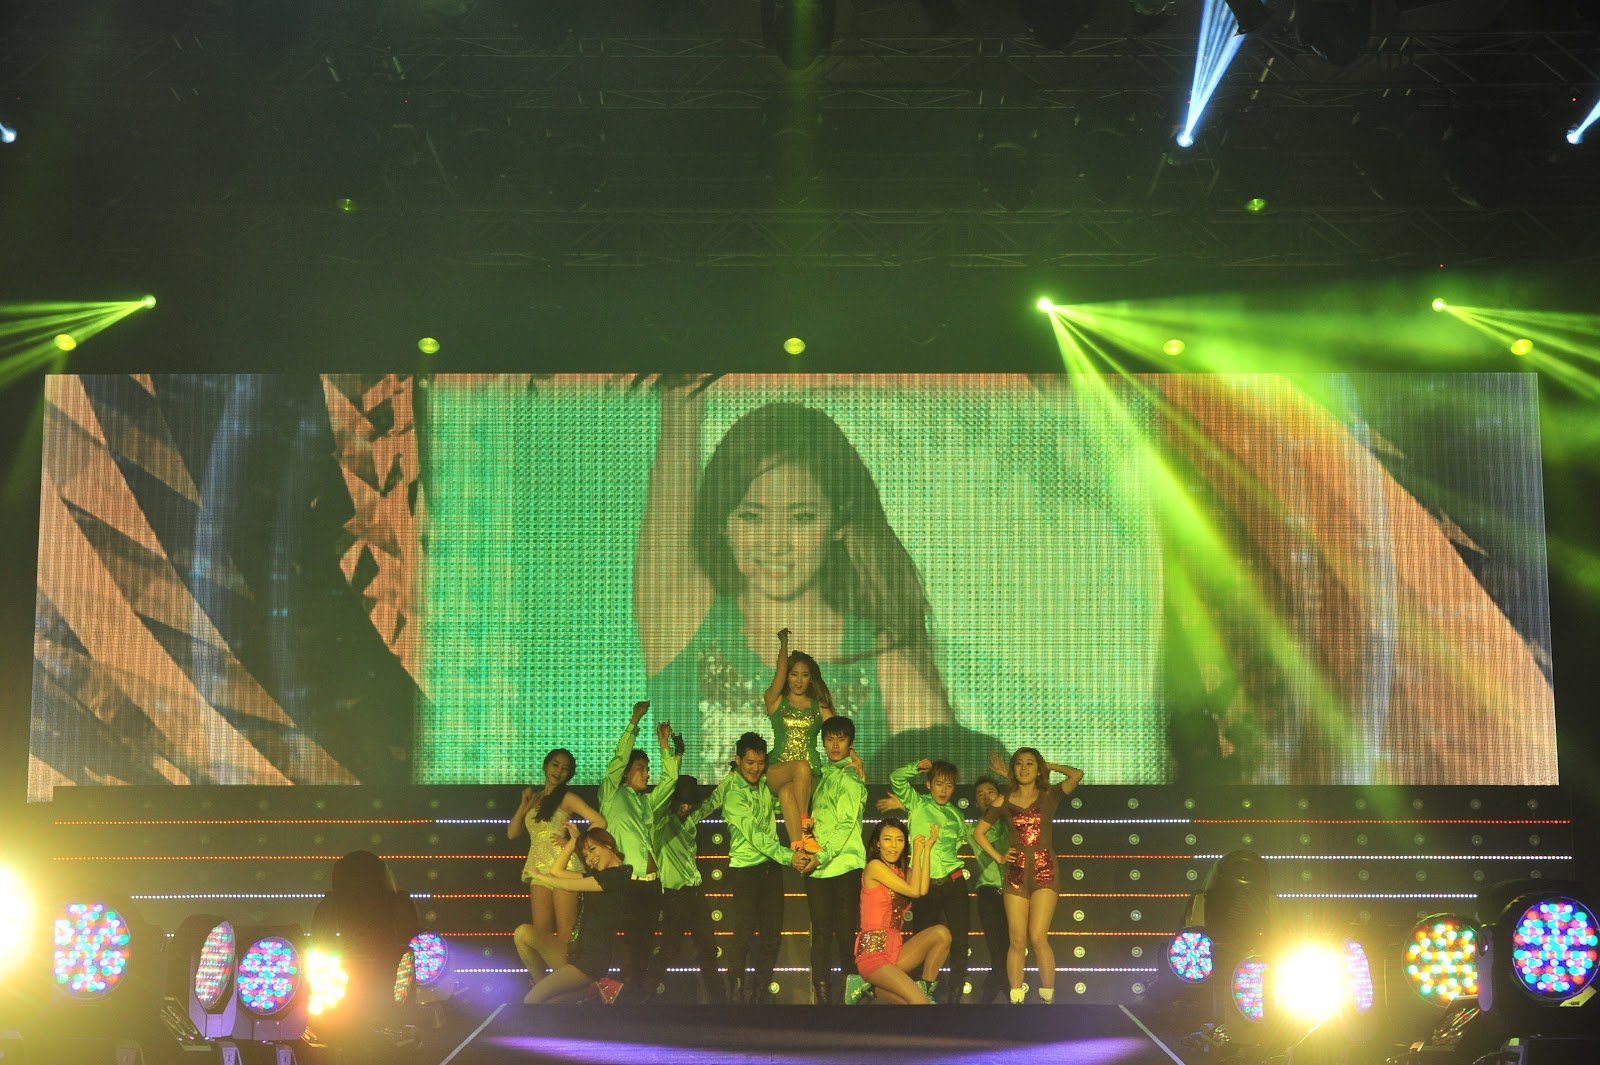 fb58c4e5ac567 The five-member girl group (Yubin, Sunye, Ye Eun, Sohee, and Hyelim) from  JYP Entertainment took the stage with a total of 23 songs, showcasing not  only ...